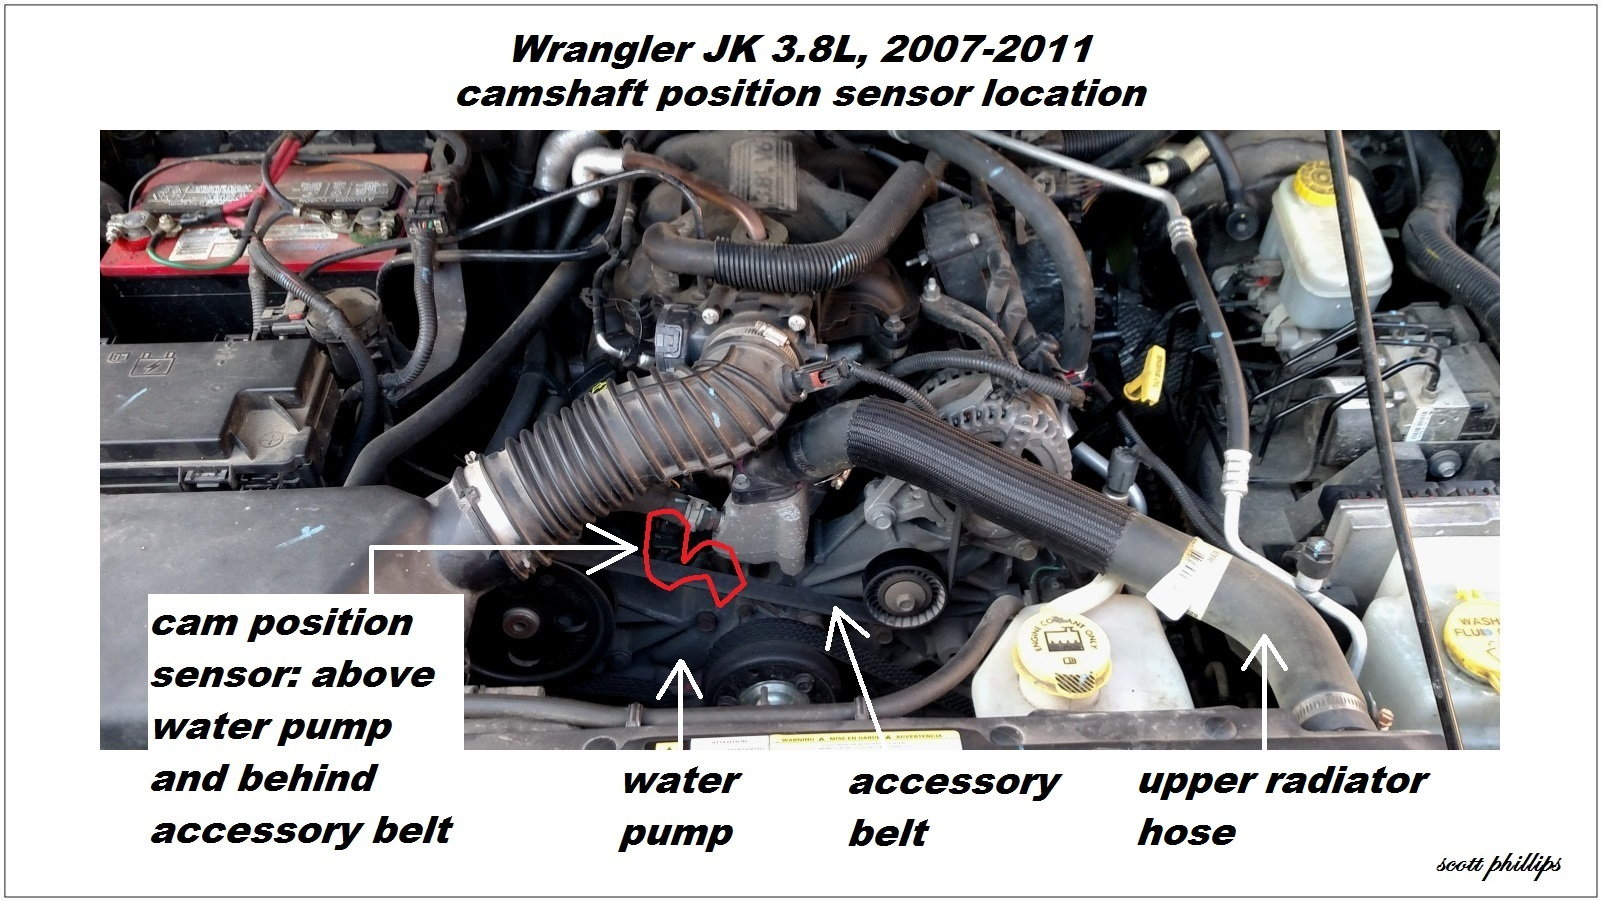 jeep tj stereo wiring diagram 4 lead ekg placement 2008 wrangler 3 8 l ignition coil plug wire : 56 images - ...